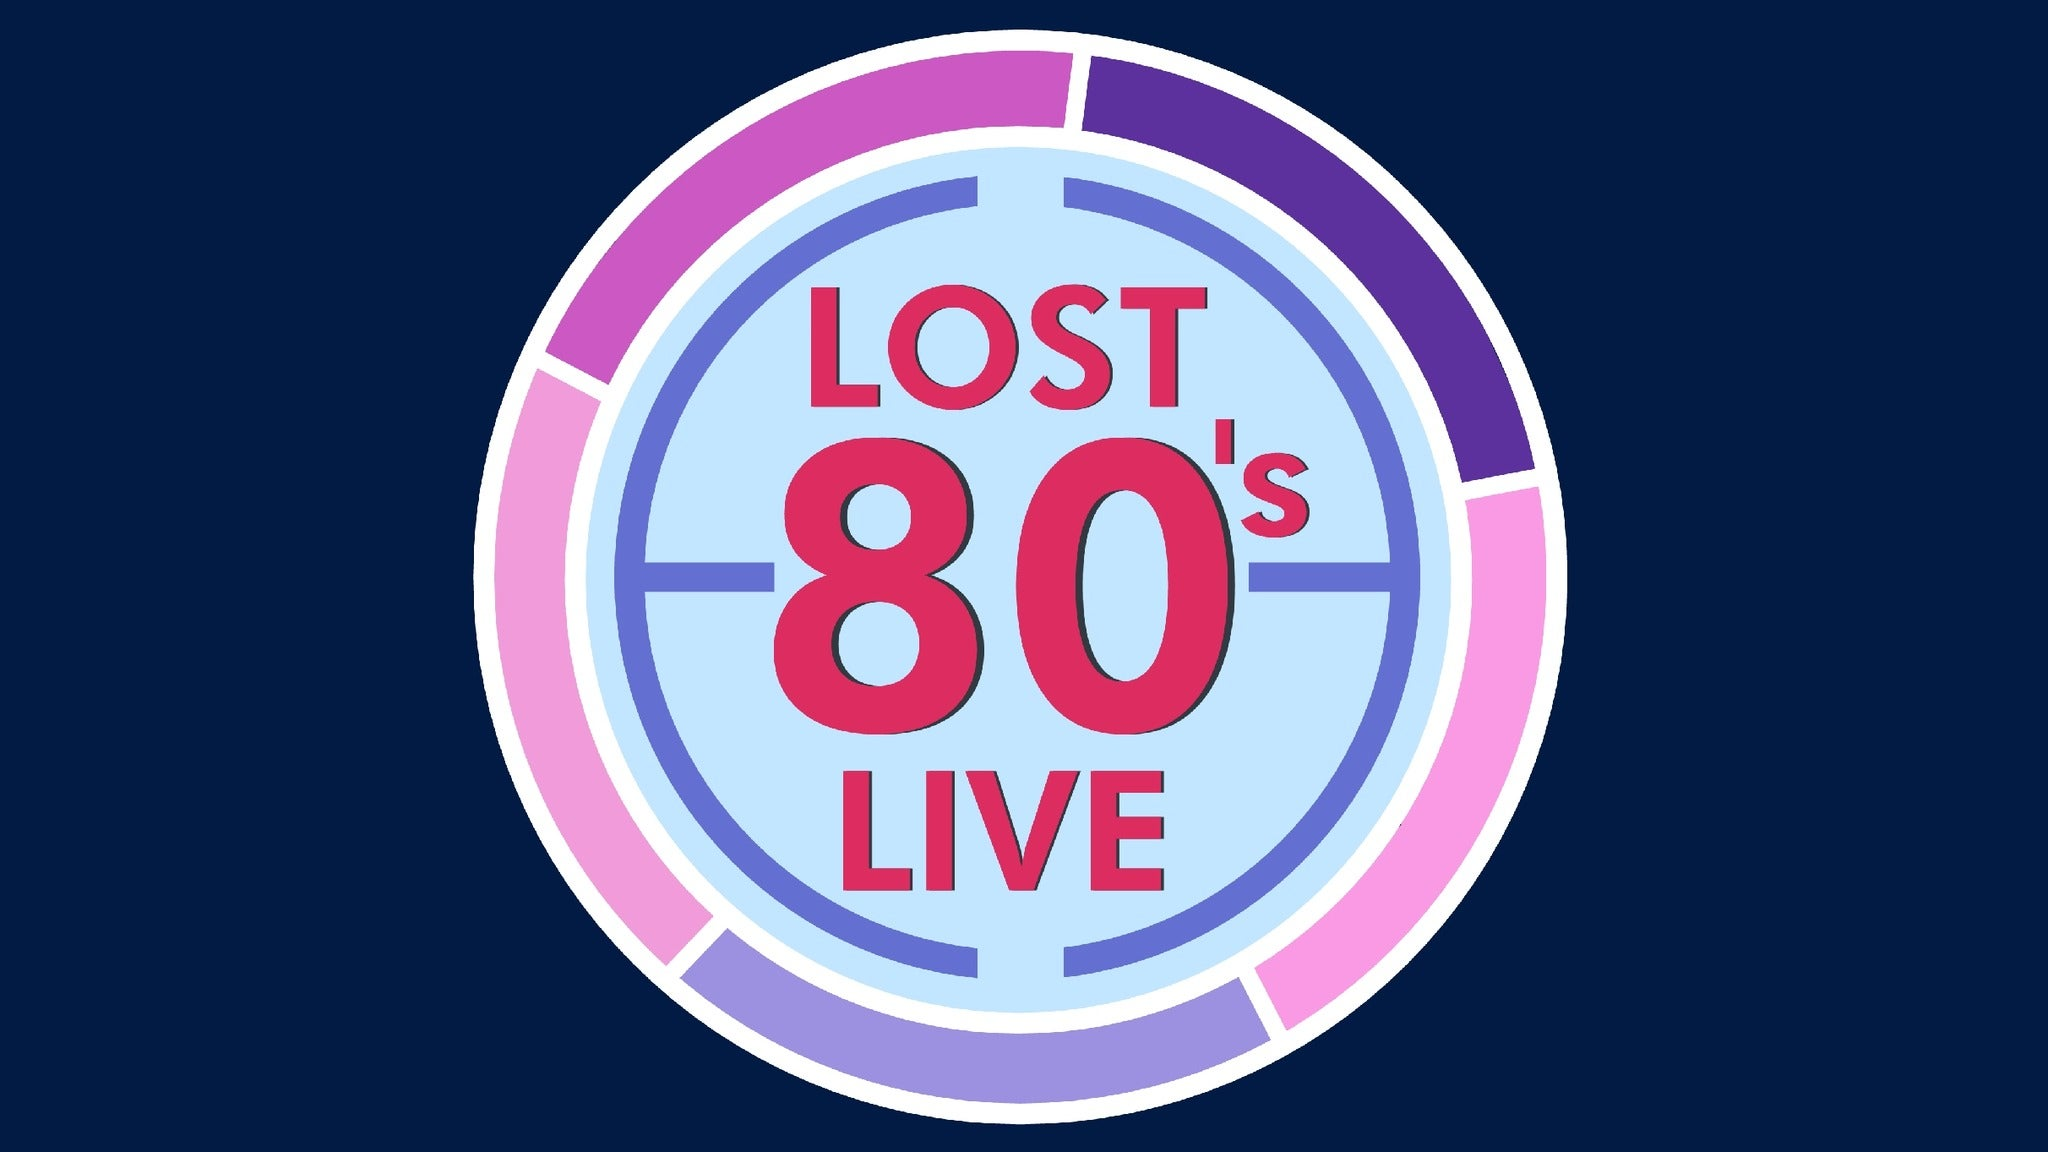 Lost 80s Live at Mountain Winery